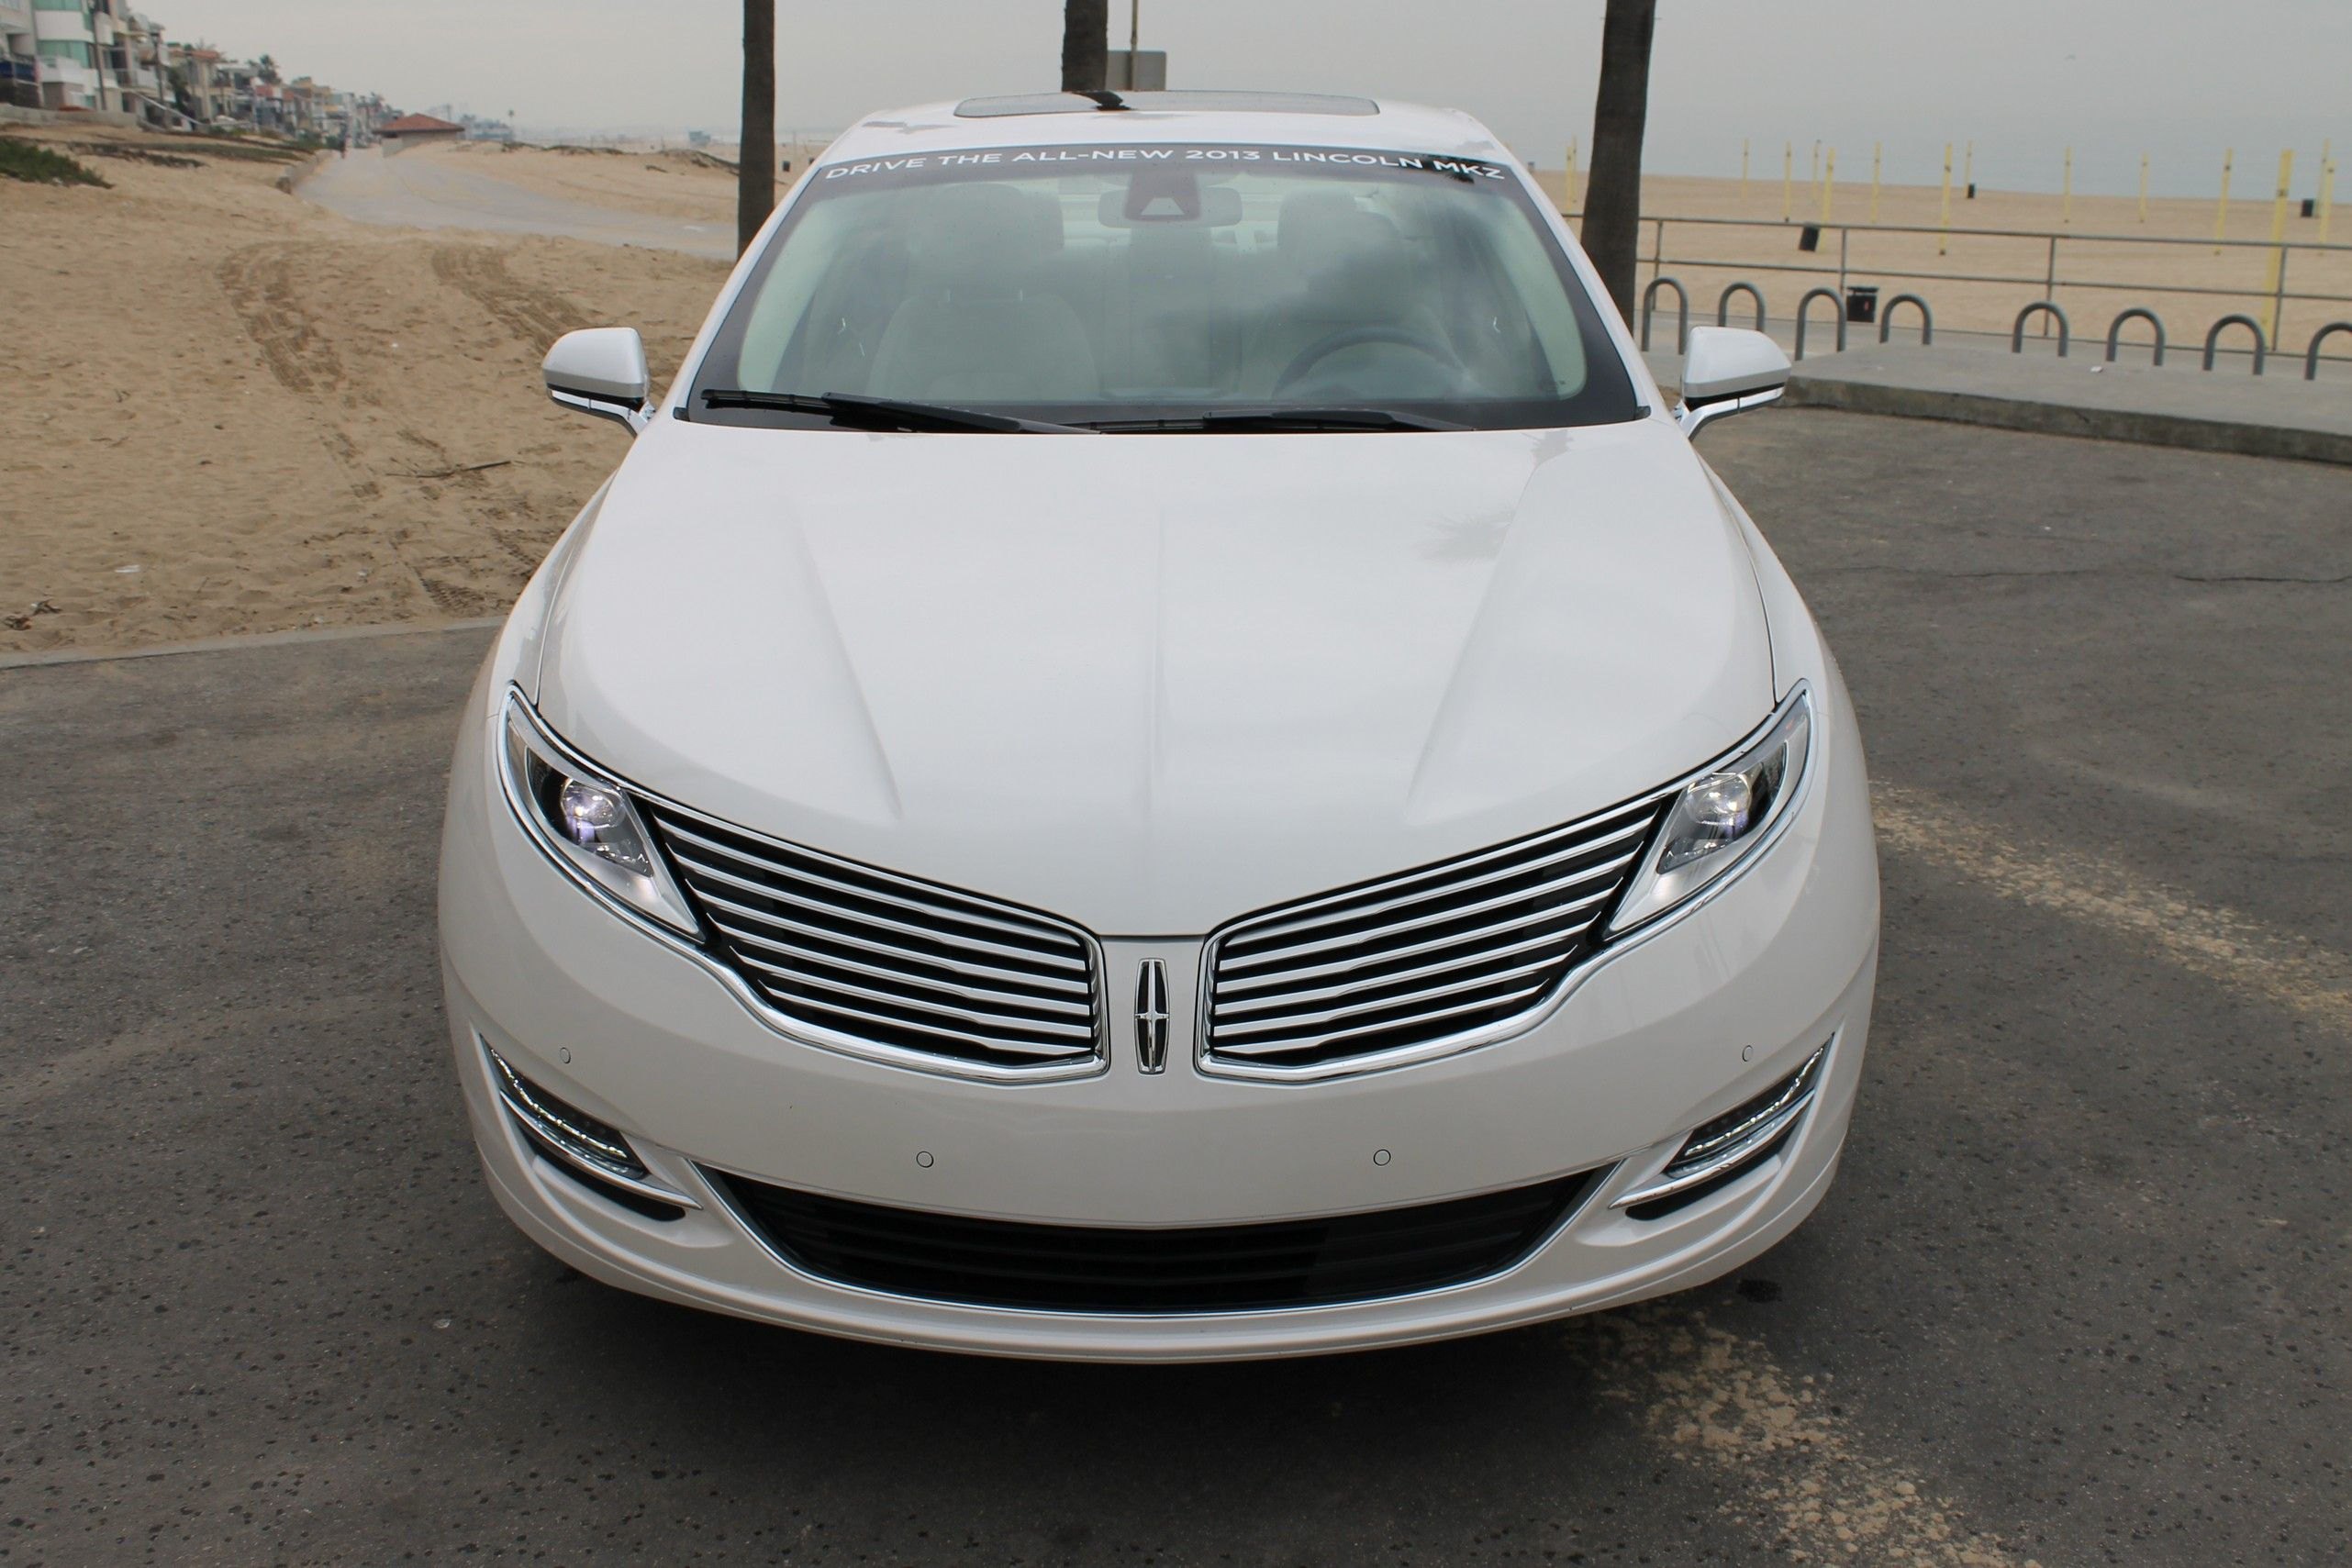 for sale lincoln hybrid the truth review ten mkz about cars